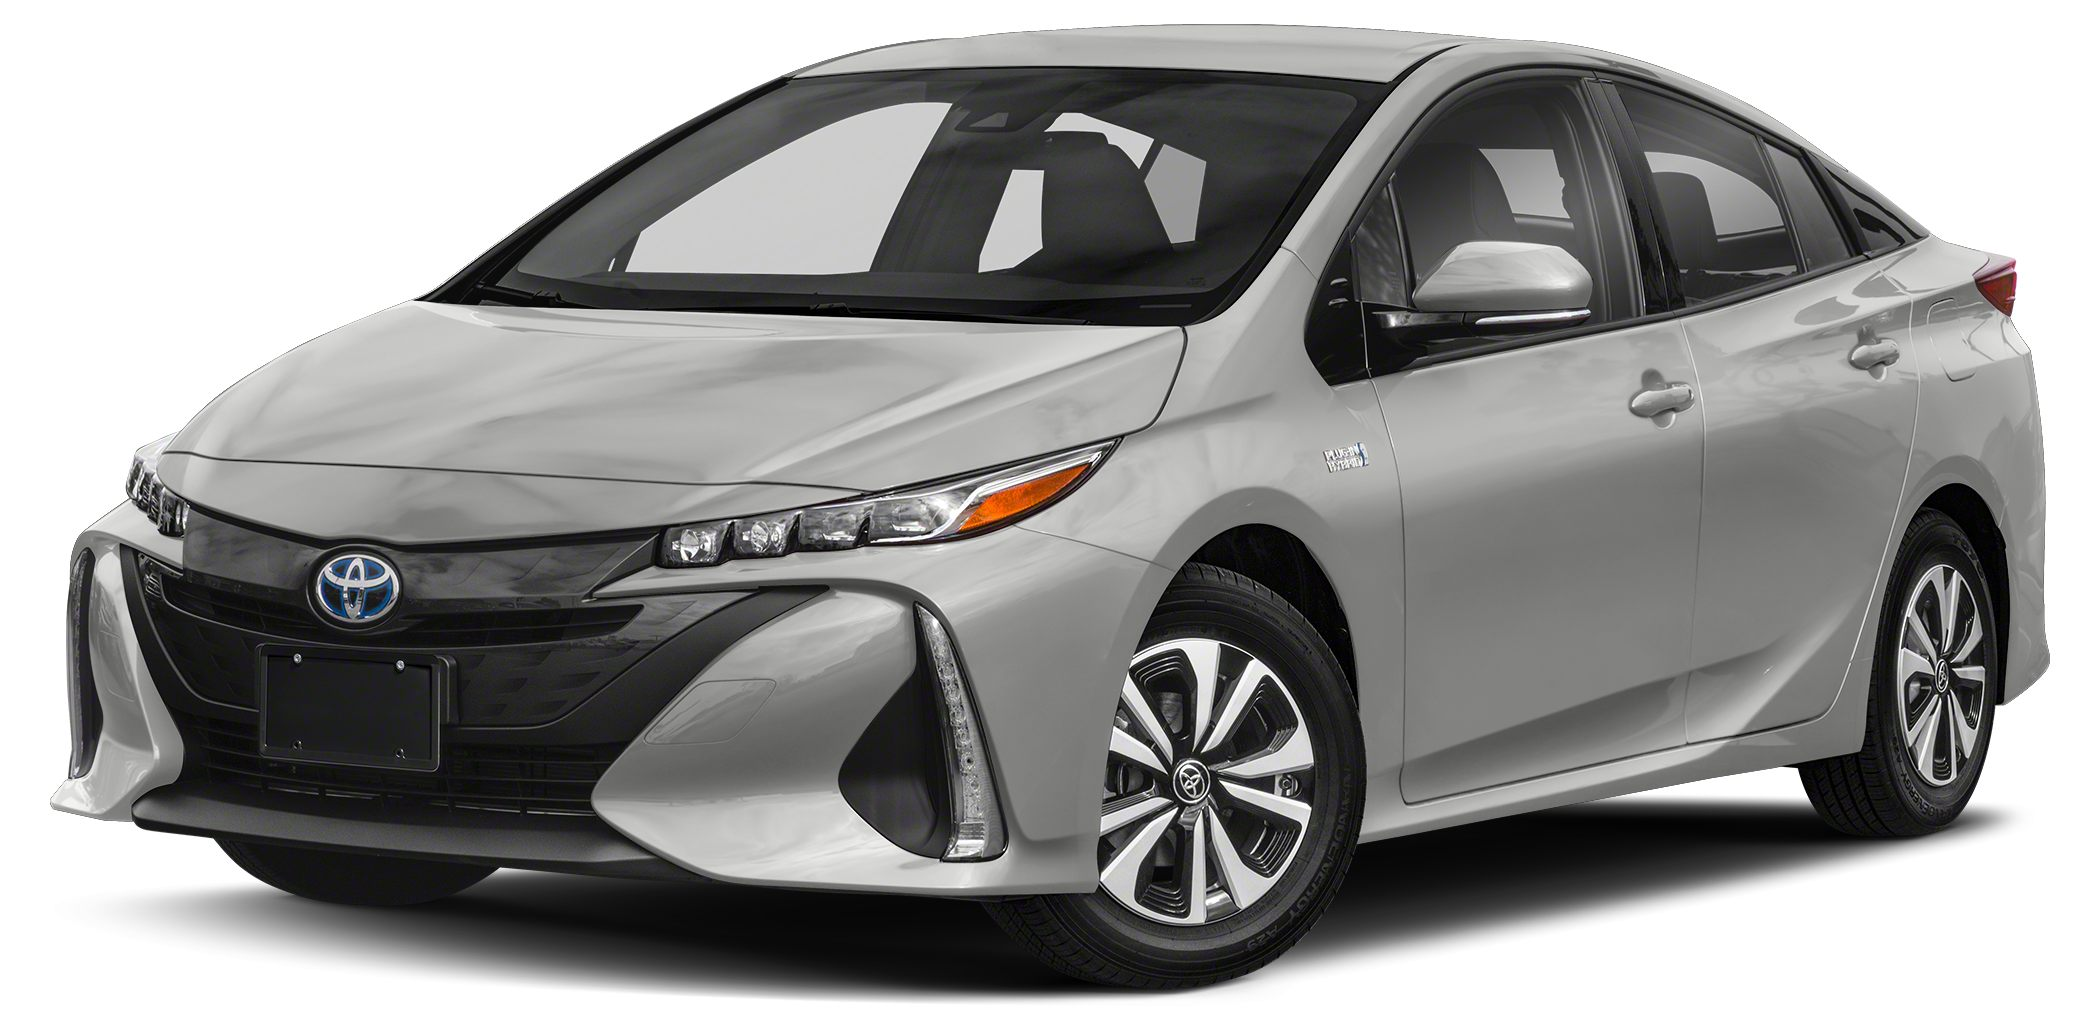 2017 Toyota Prius Prime Advanced Heated Seats Nav System Keyless Start Onboard Communications S